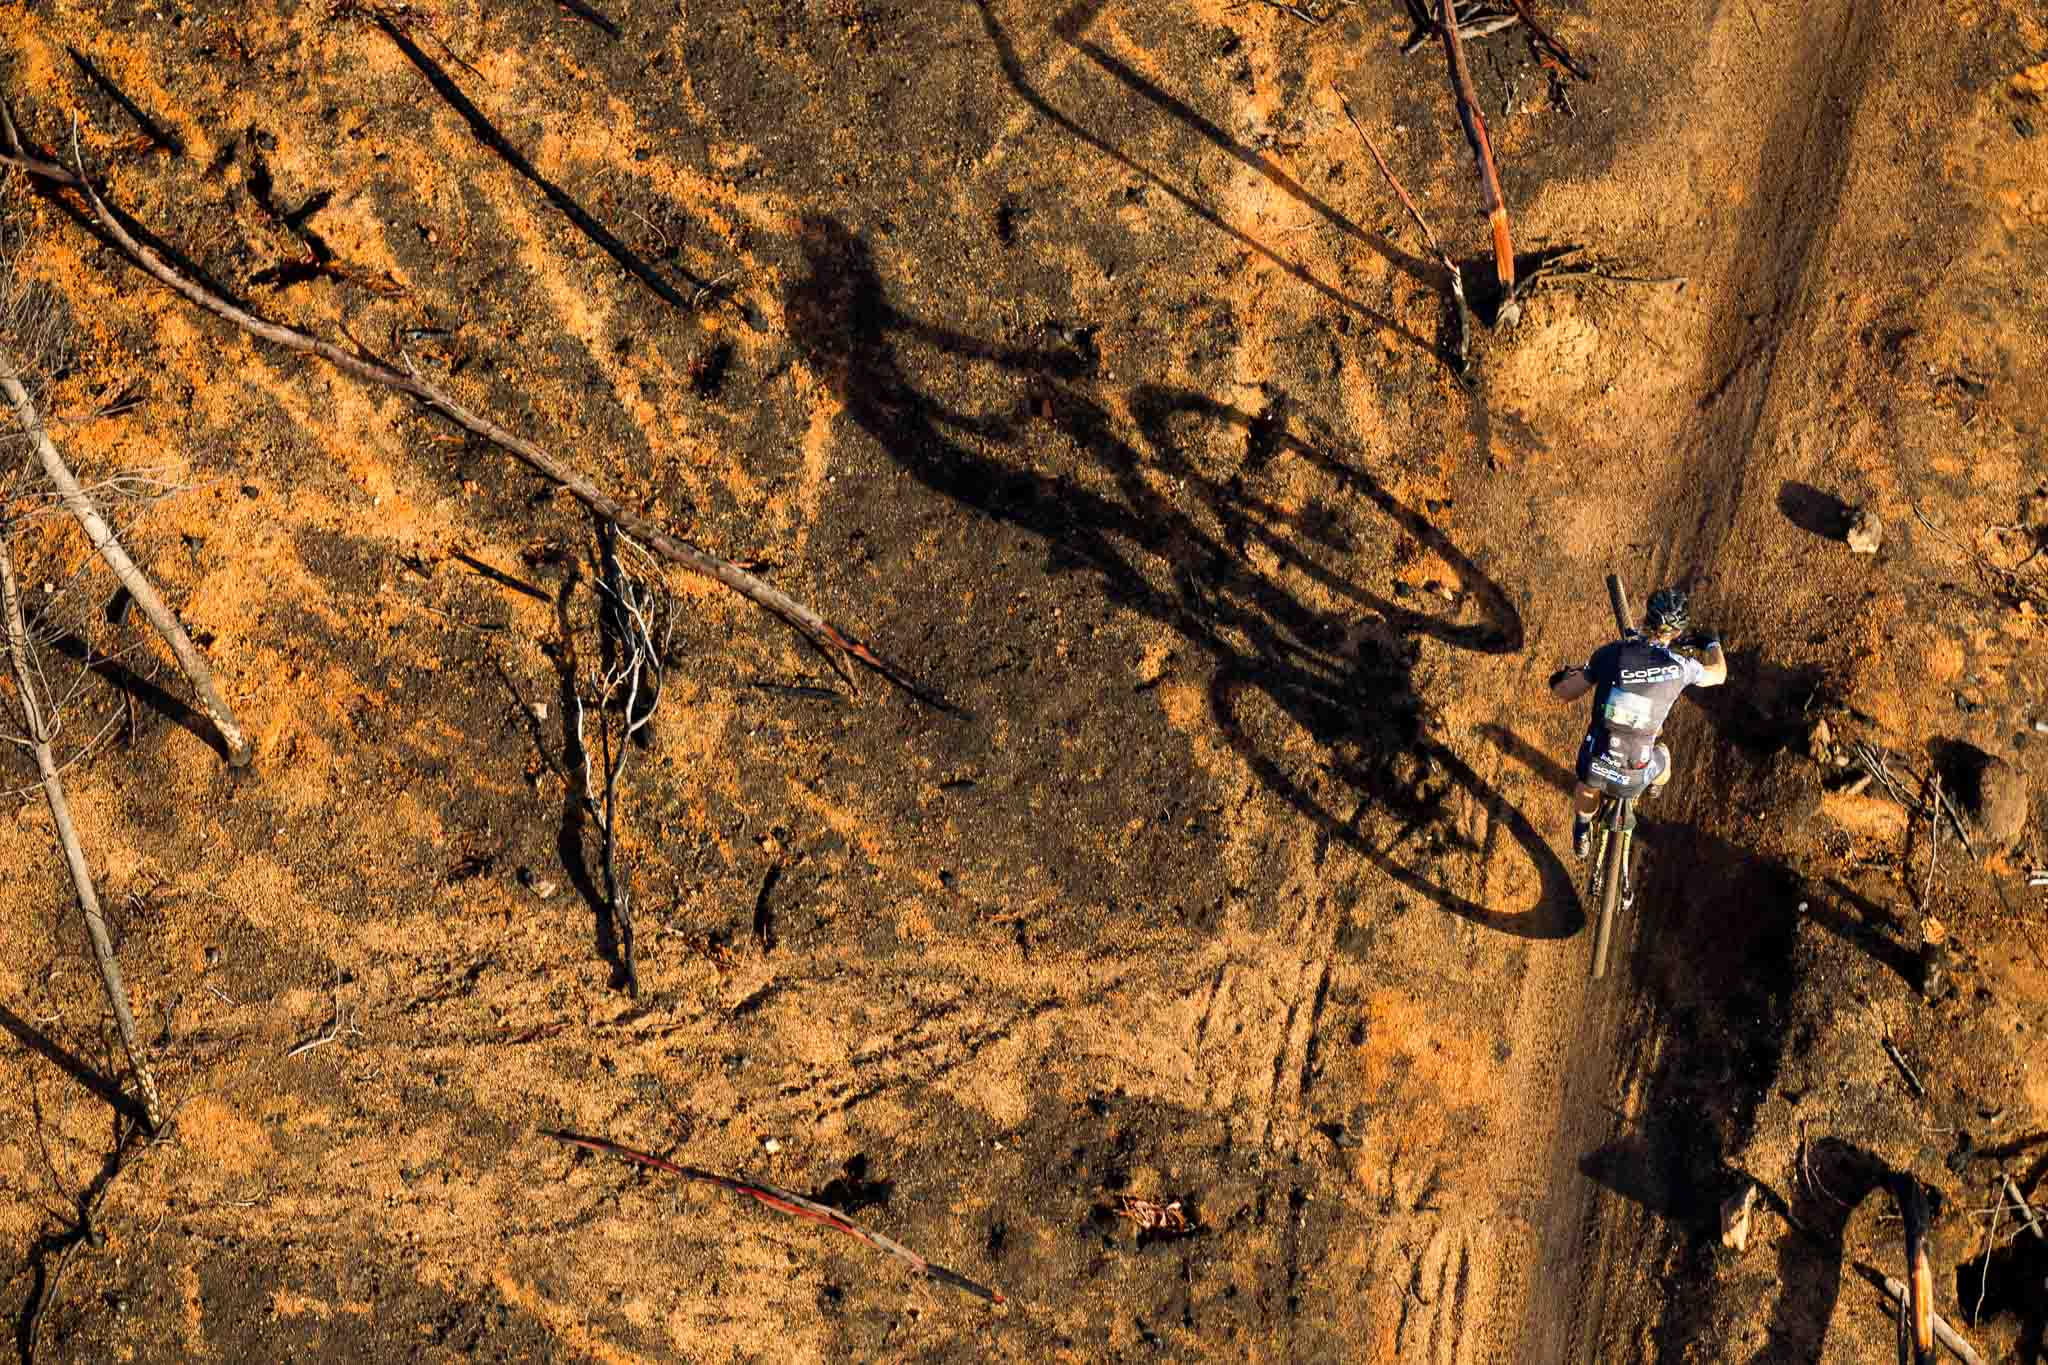 Oliver Munnik of GoPro during stage 6 of the 2016 Absa Cape Epic Mountain Bike stage race from Boschendal in Stellenbosch, South Africa on the 19th March 2015 Photo by Gary Perkin/Cape Epic/SPORTZPICS PLEASE ENSURE THE APPROPRIATE CREDIT IS GIVEN TO THE PHOTOGRAPHER AND SPORTZPICS ALONG WITH THE ABSA CAPE EPIC ace2016